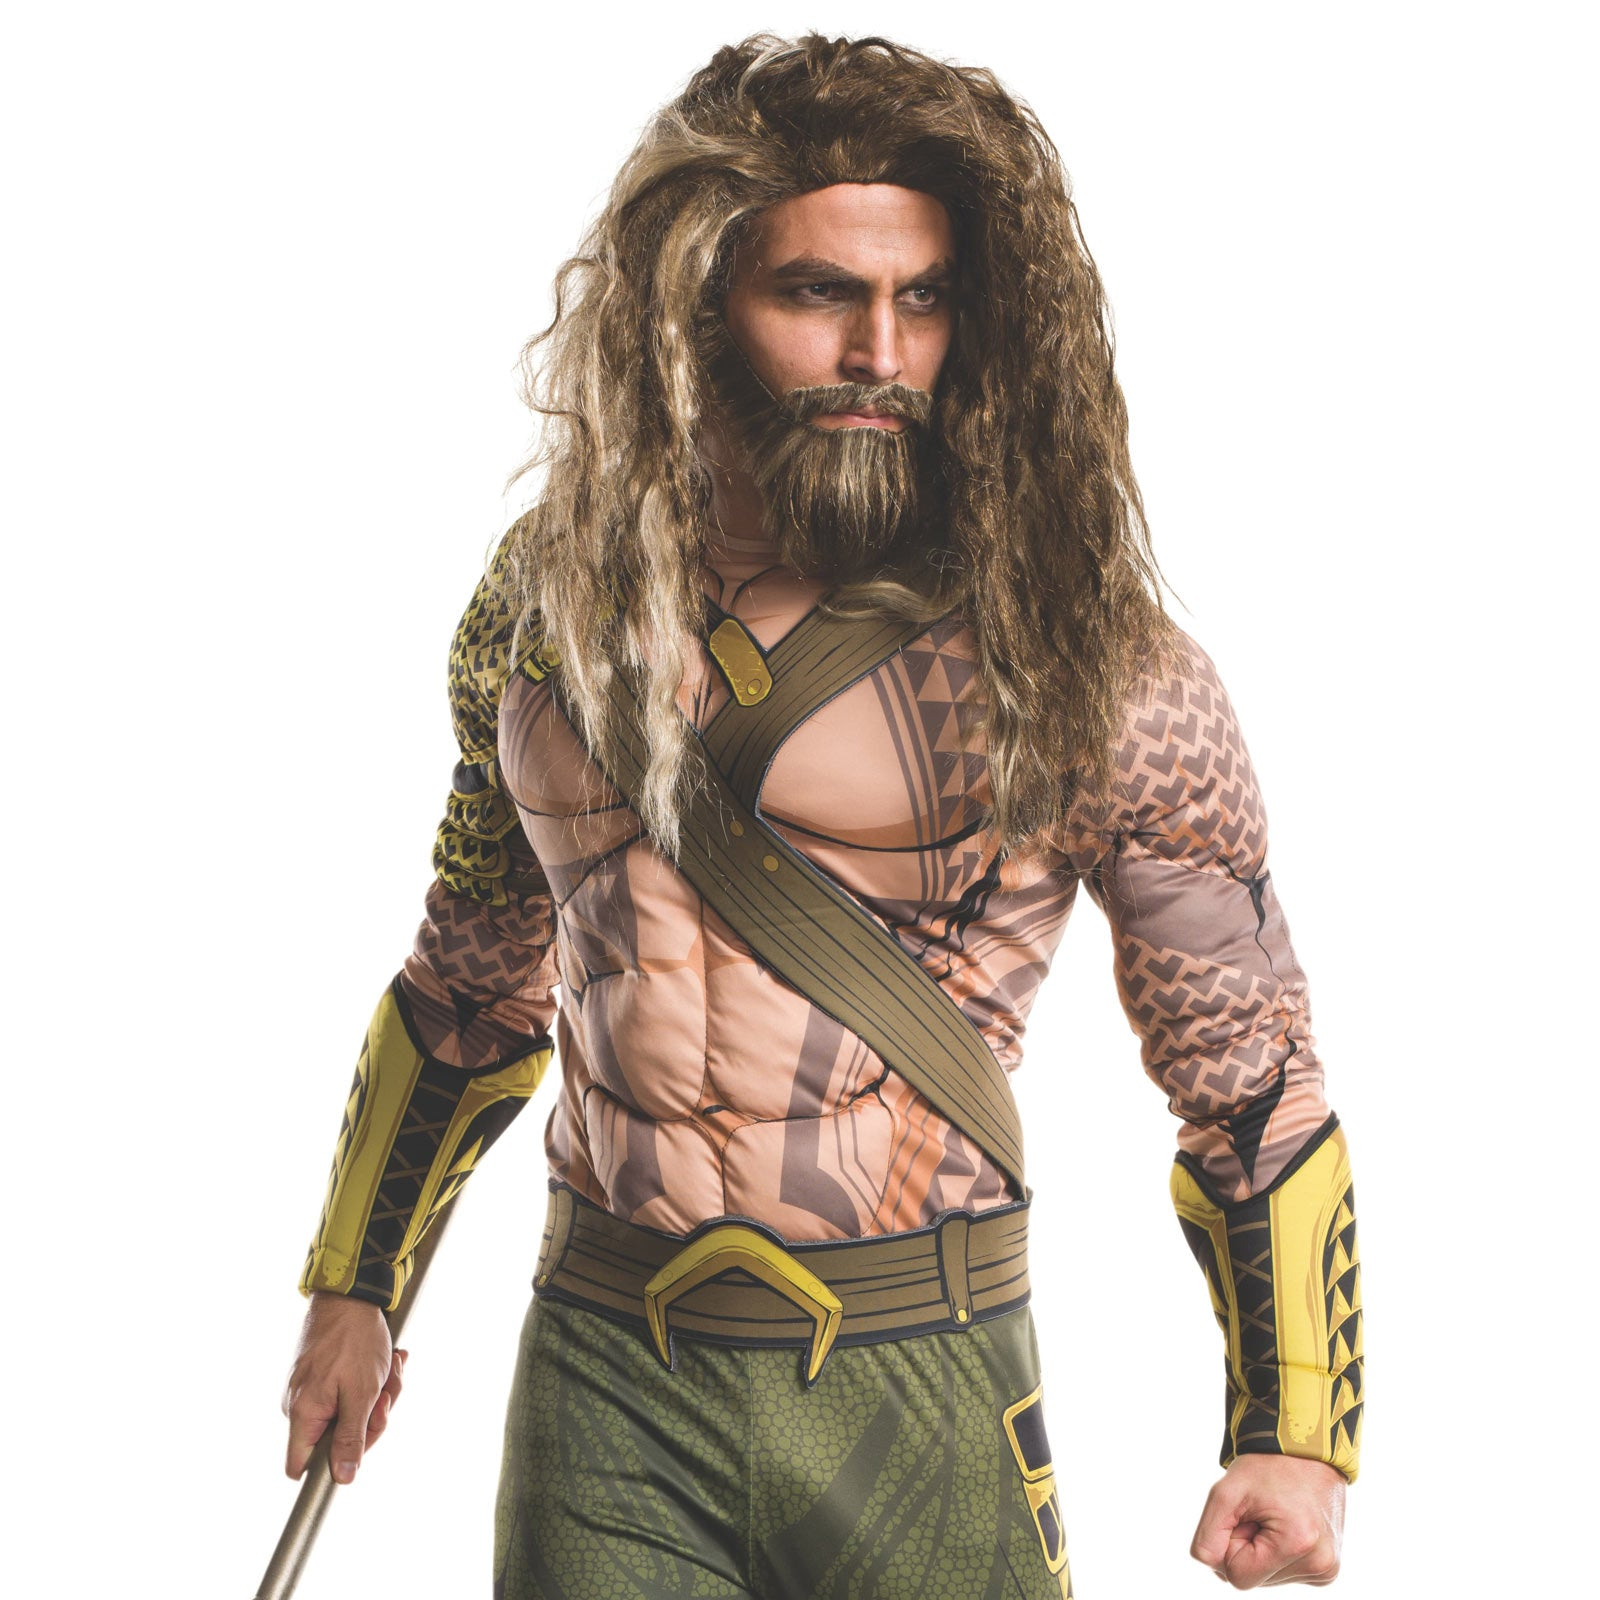 Aquaman Beard and Wig Set - Buy Online Only